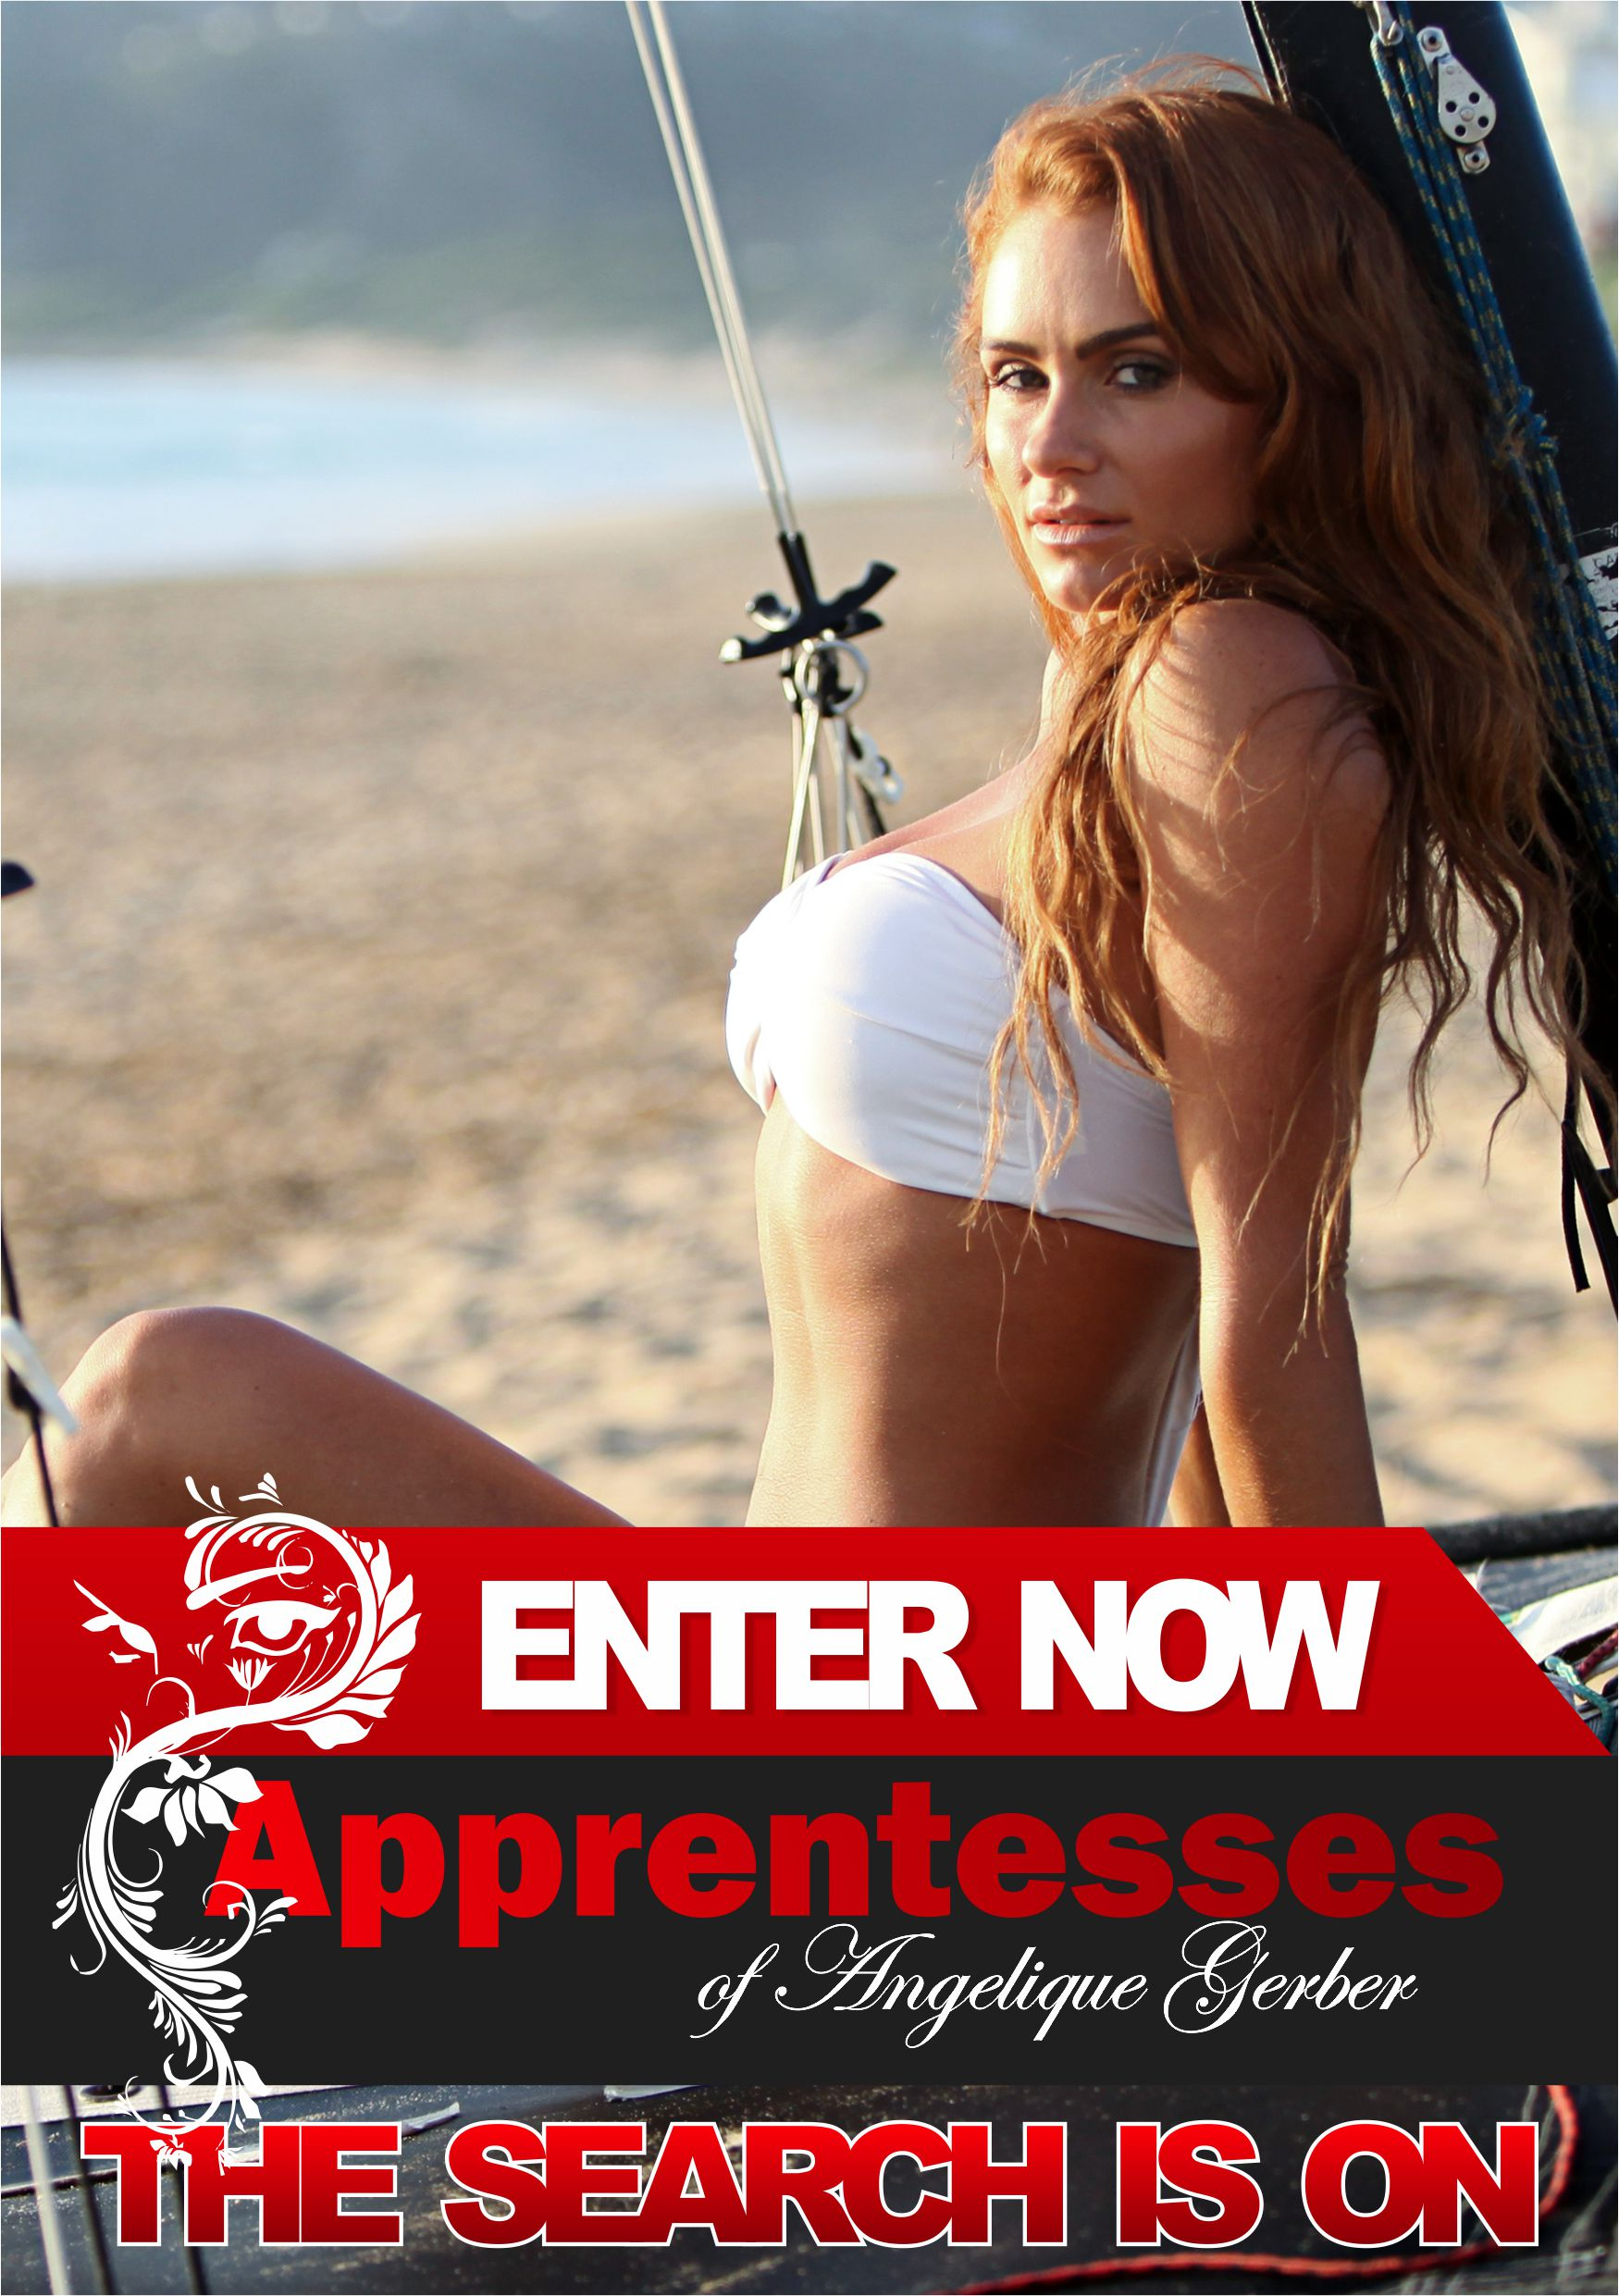 Peri-Peri-Creative-Apprentesses-of-Angelique-Gerber A5 Advert Small_3